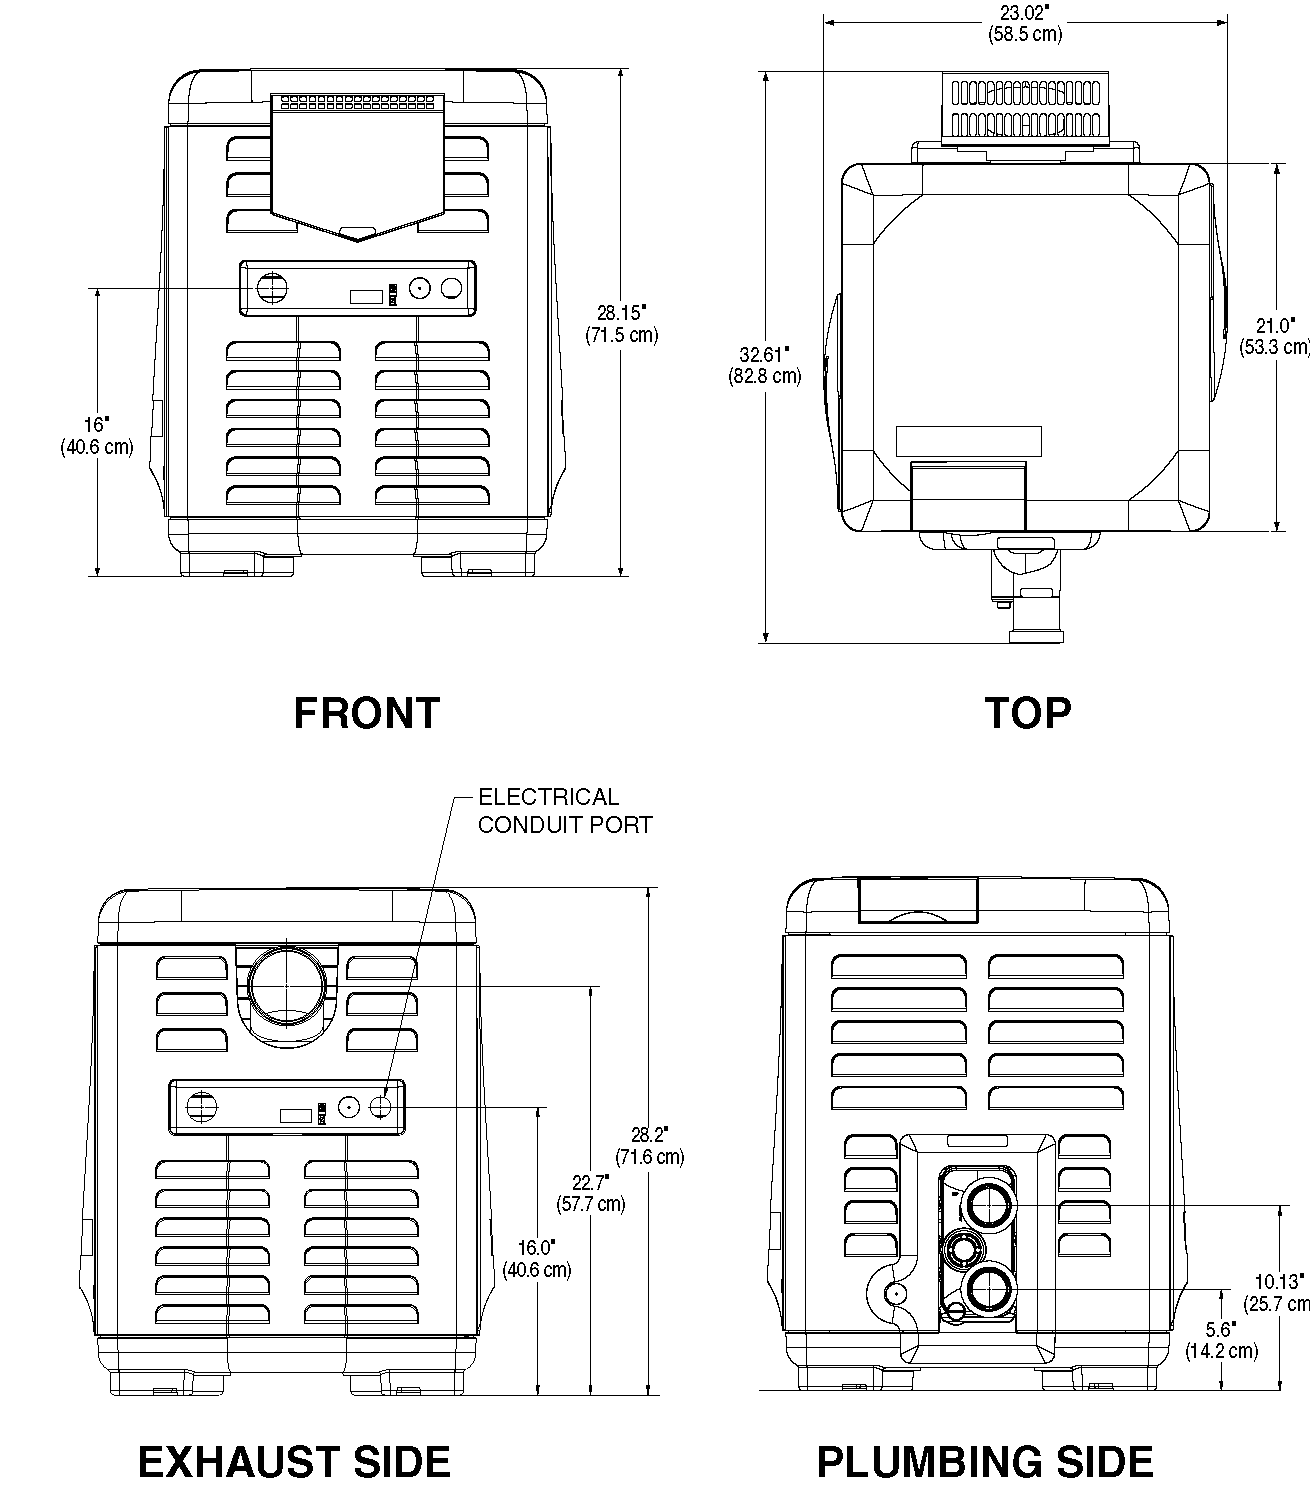 Heater Specifications-Pg.1